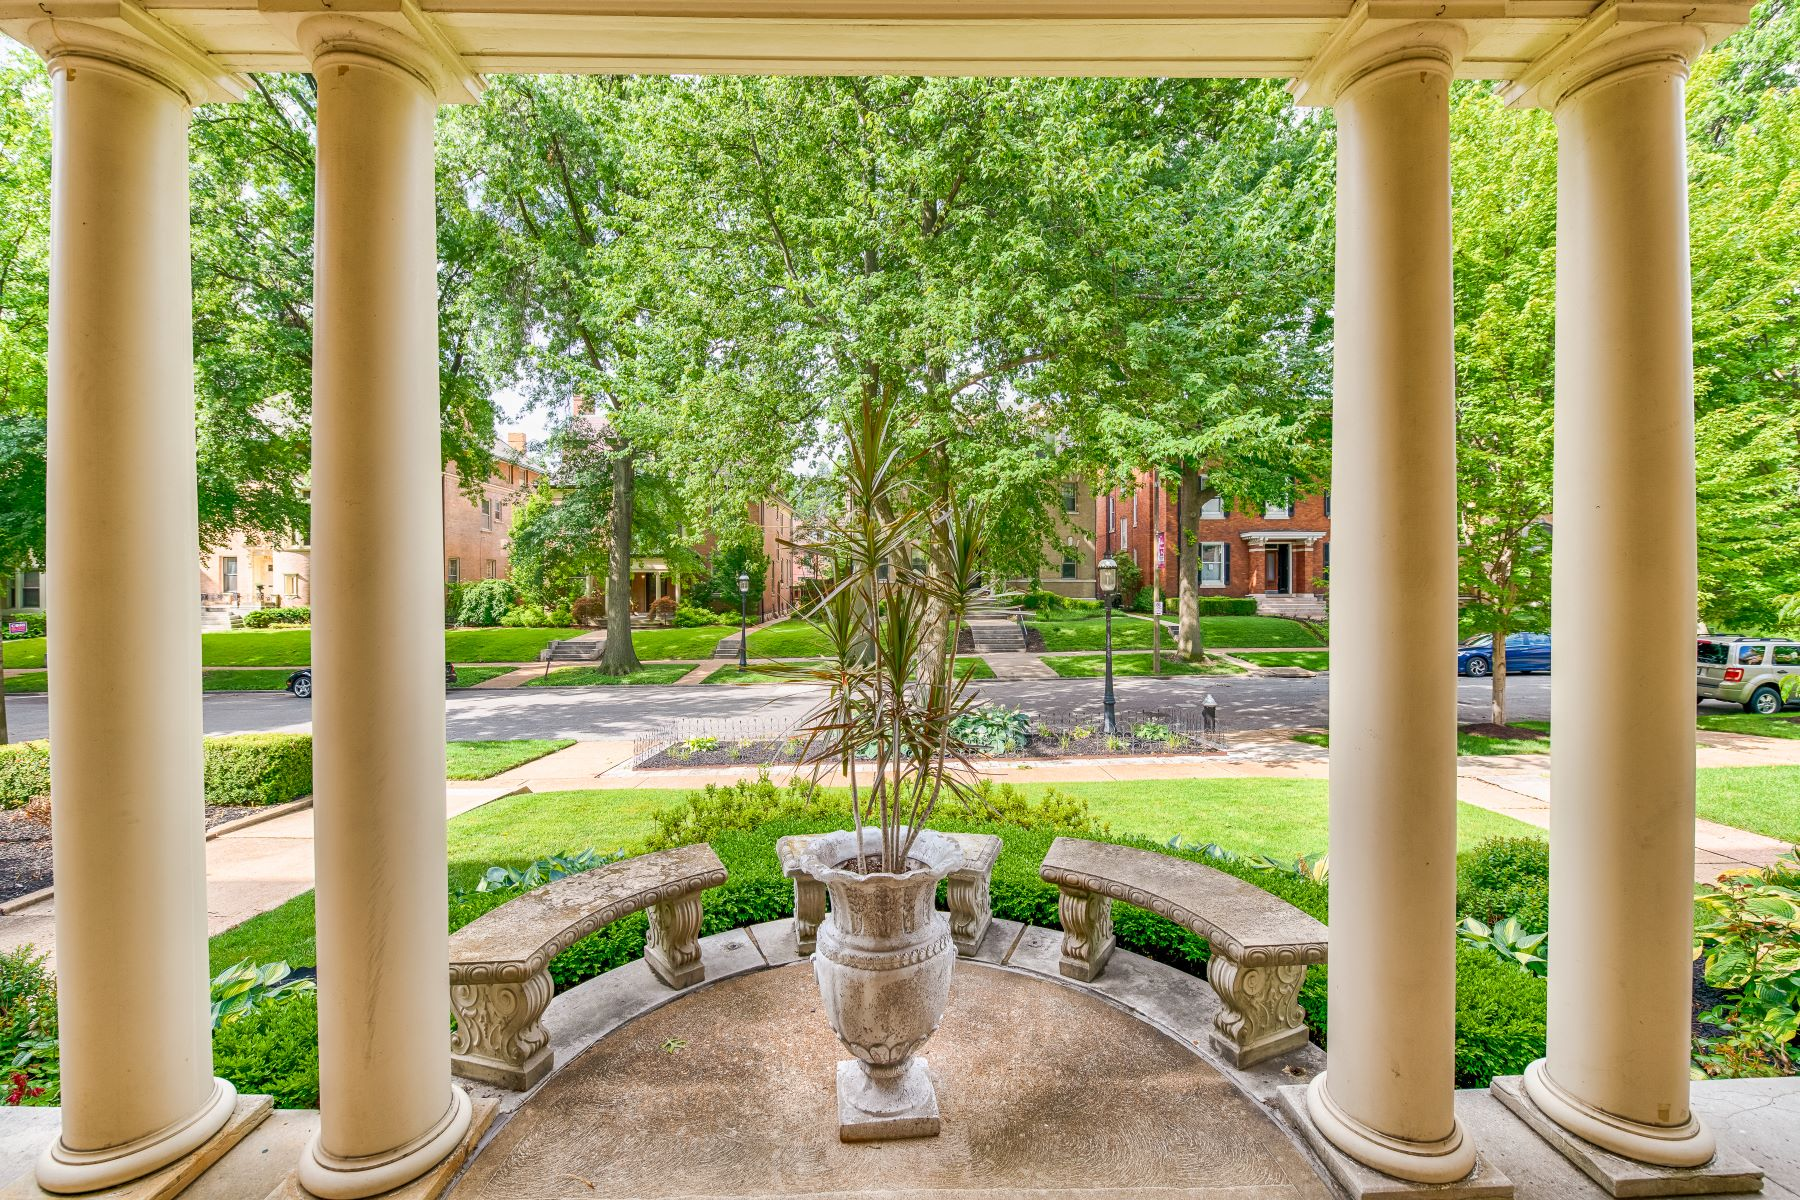 Single Family Homes for Sale at Westminster Place 4441 Westminster Place St. Louis, Missouri 63108 United States